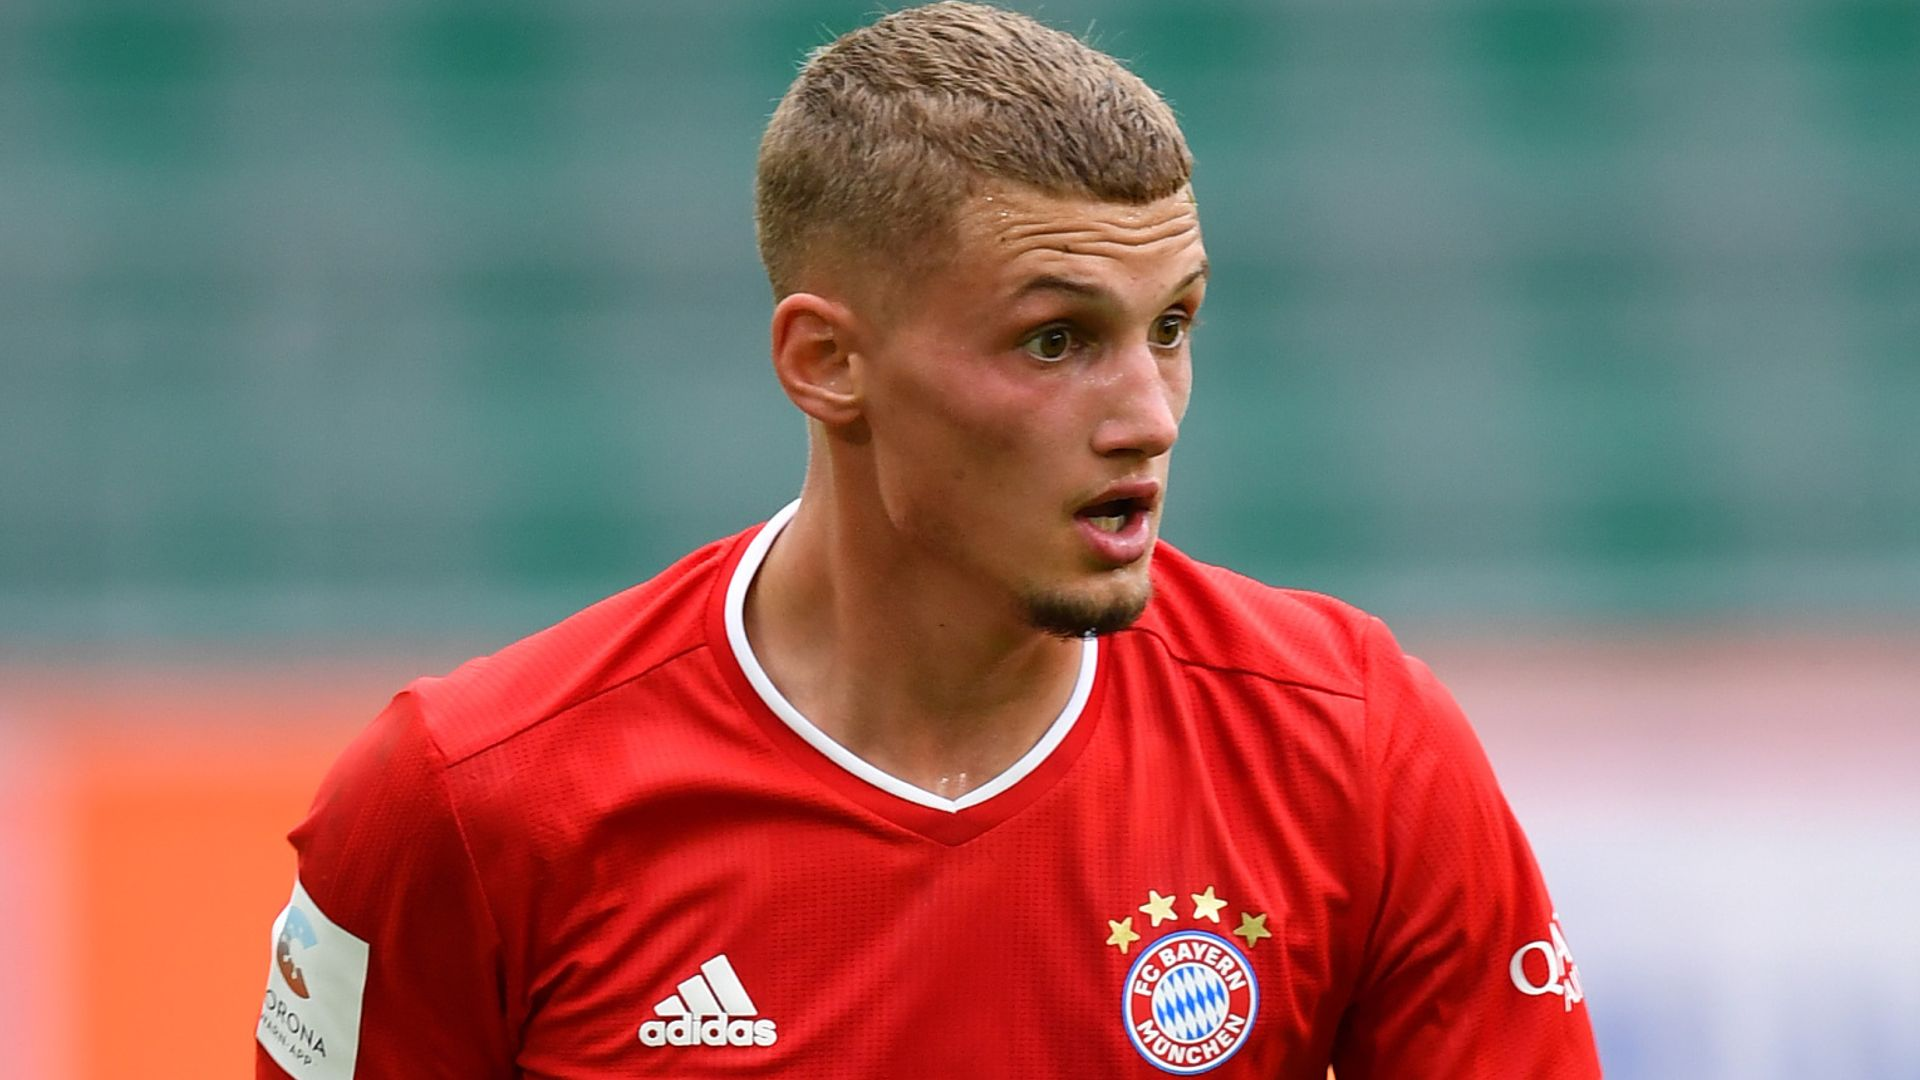 Leeds close to signing Bayern midfielder Cuisance